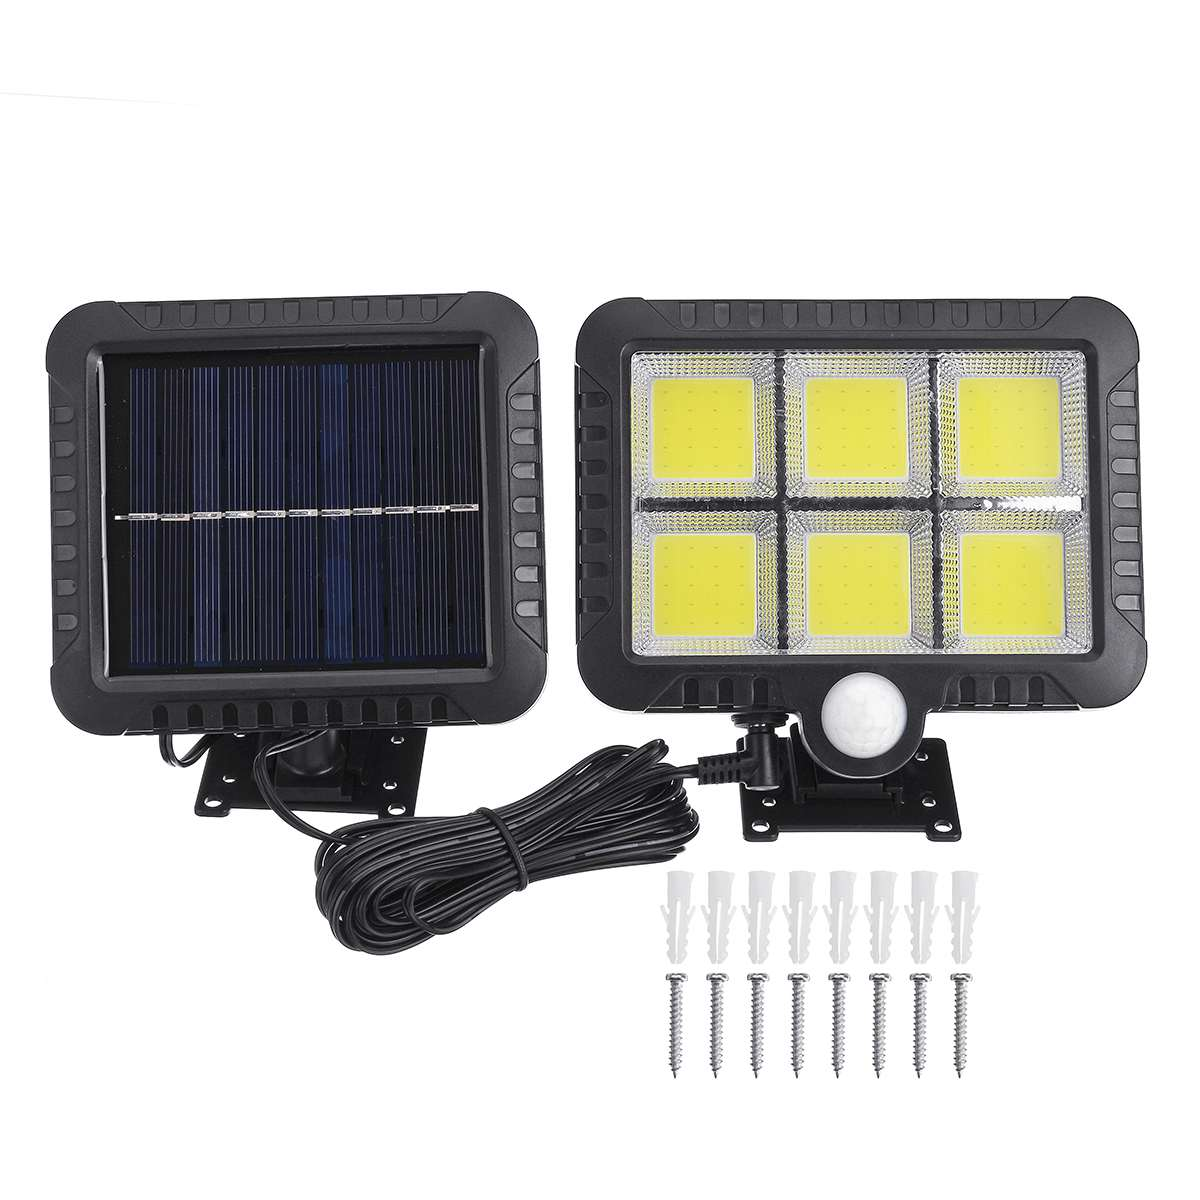 50W COB Solar Power Light Split Type Motion Sensor Outdoor Wall Lamp Waterproof IP65 Energy Saving Solar Garden Lamps